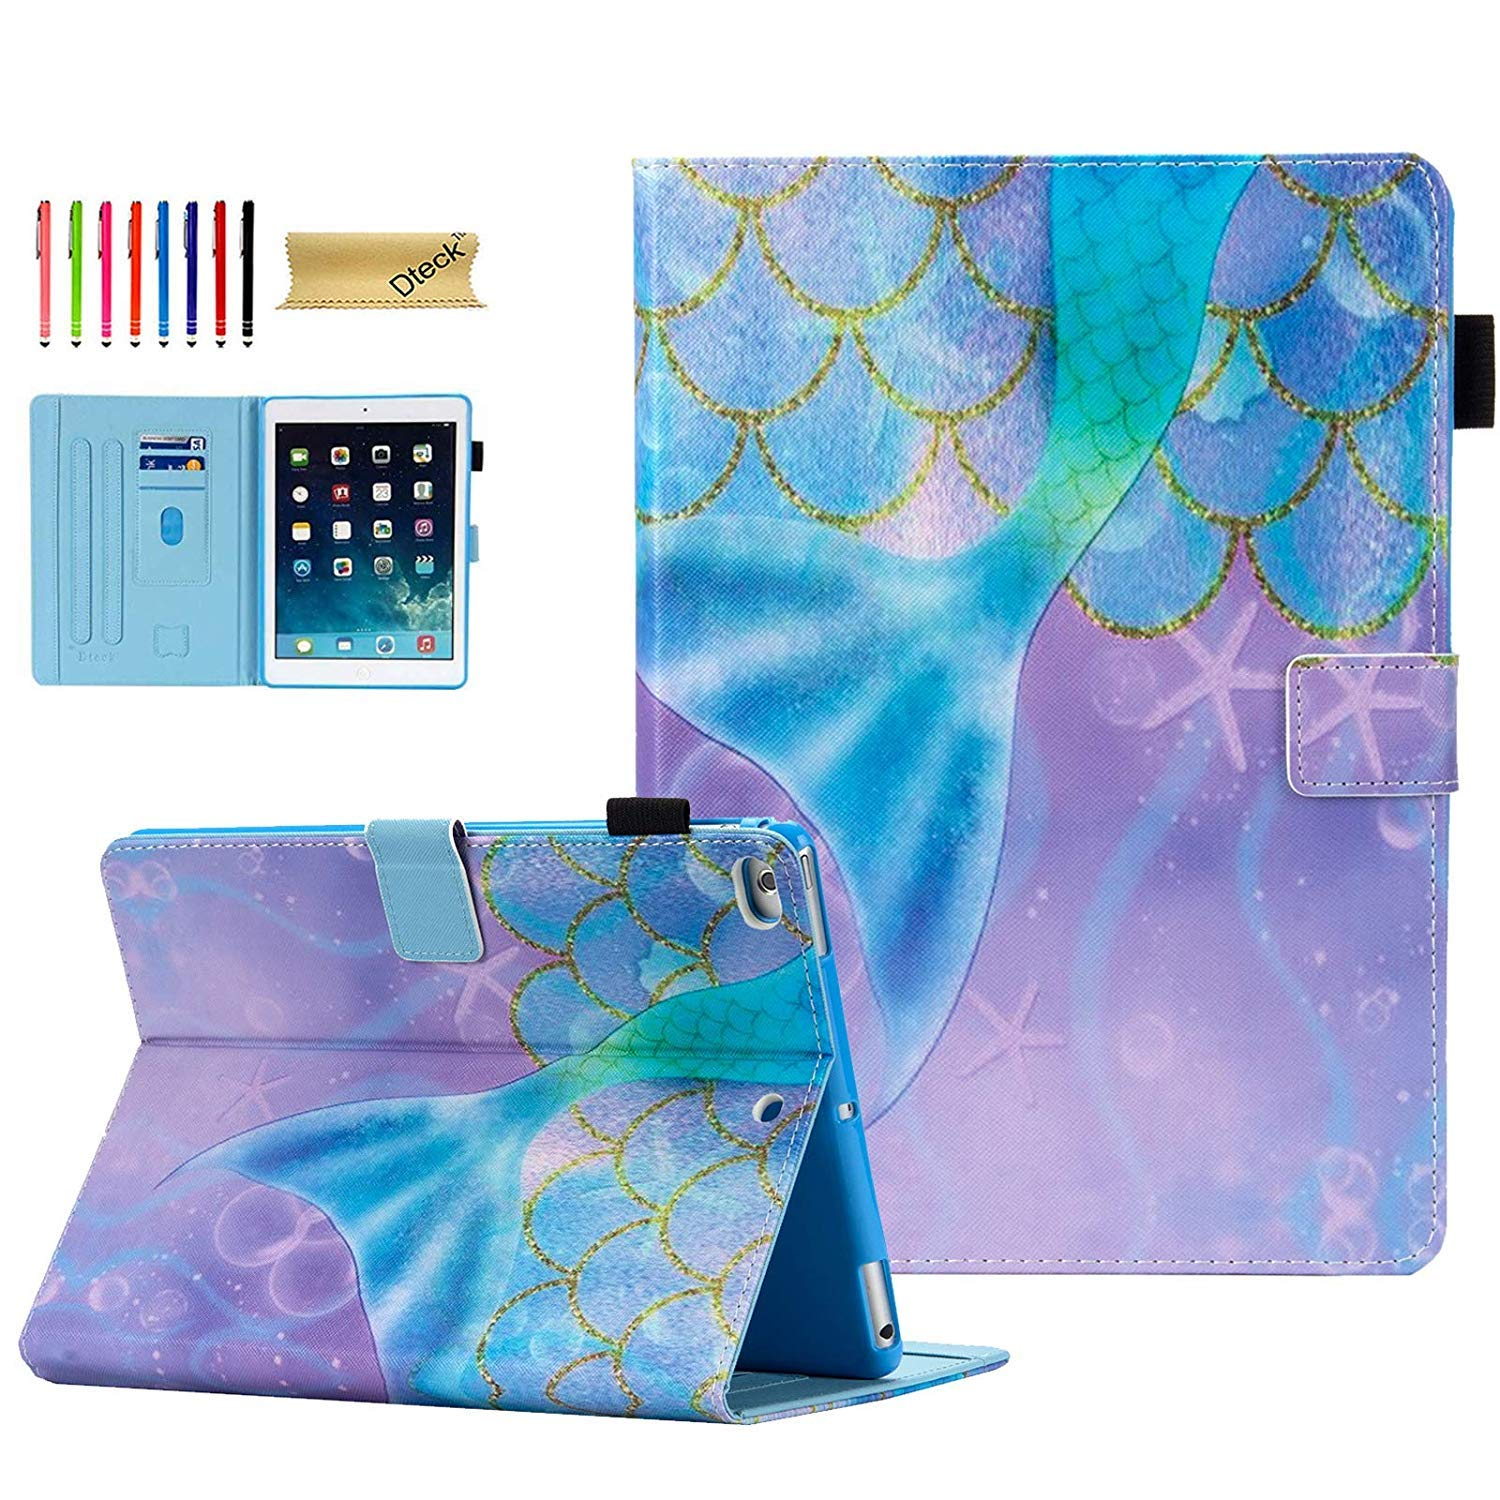 Air 1 2 Dteck iPad 9.7 Case 2018//2017 Slim Fit Folio Multi Angle Stand Auto Sleep Wake Smart Case with Soft TPU Back Cover for Apple iPad 9.7 6th 5th Gen iPad Air 1 2 Case Colorful Tree